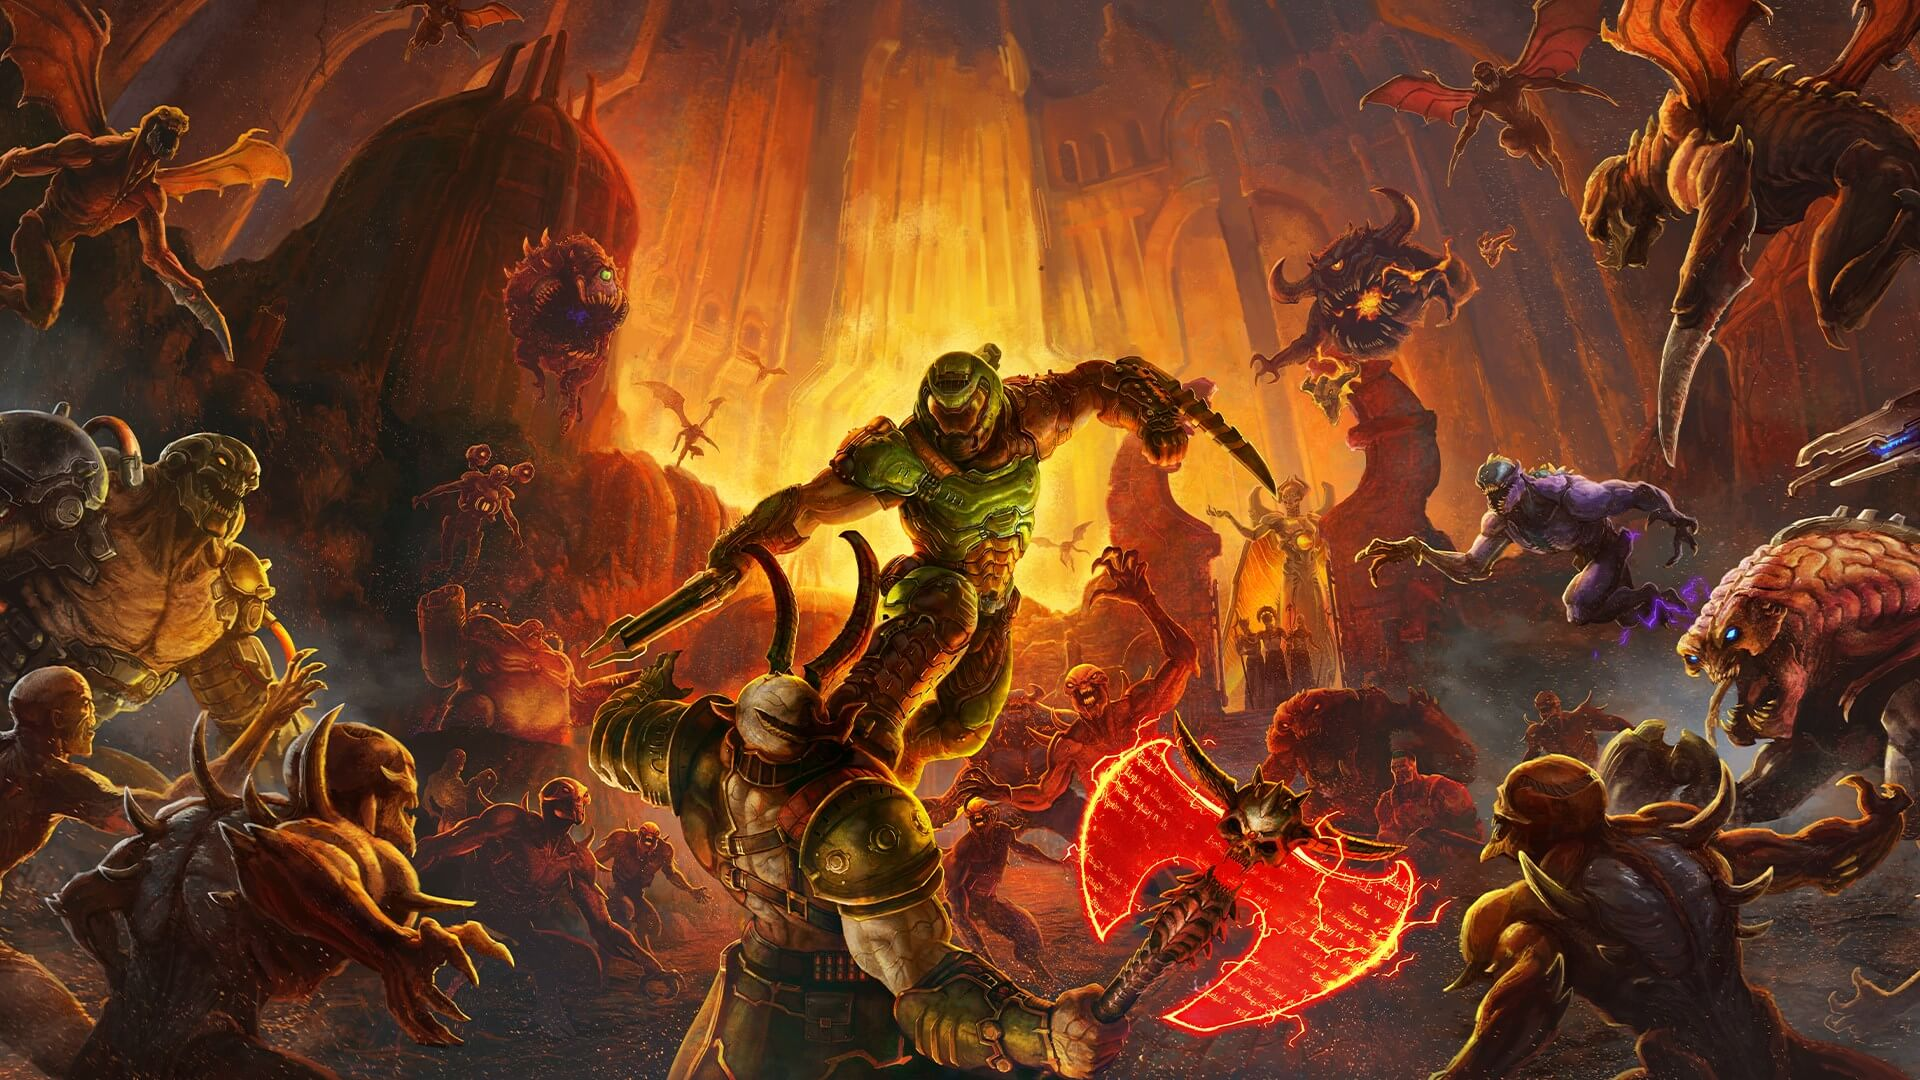 New Doom Eternal Trailer Ripe With Plot and Gameplay Details